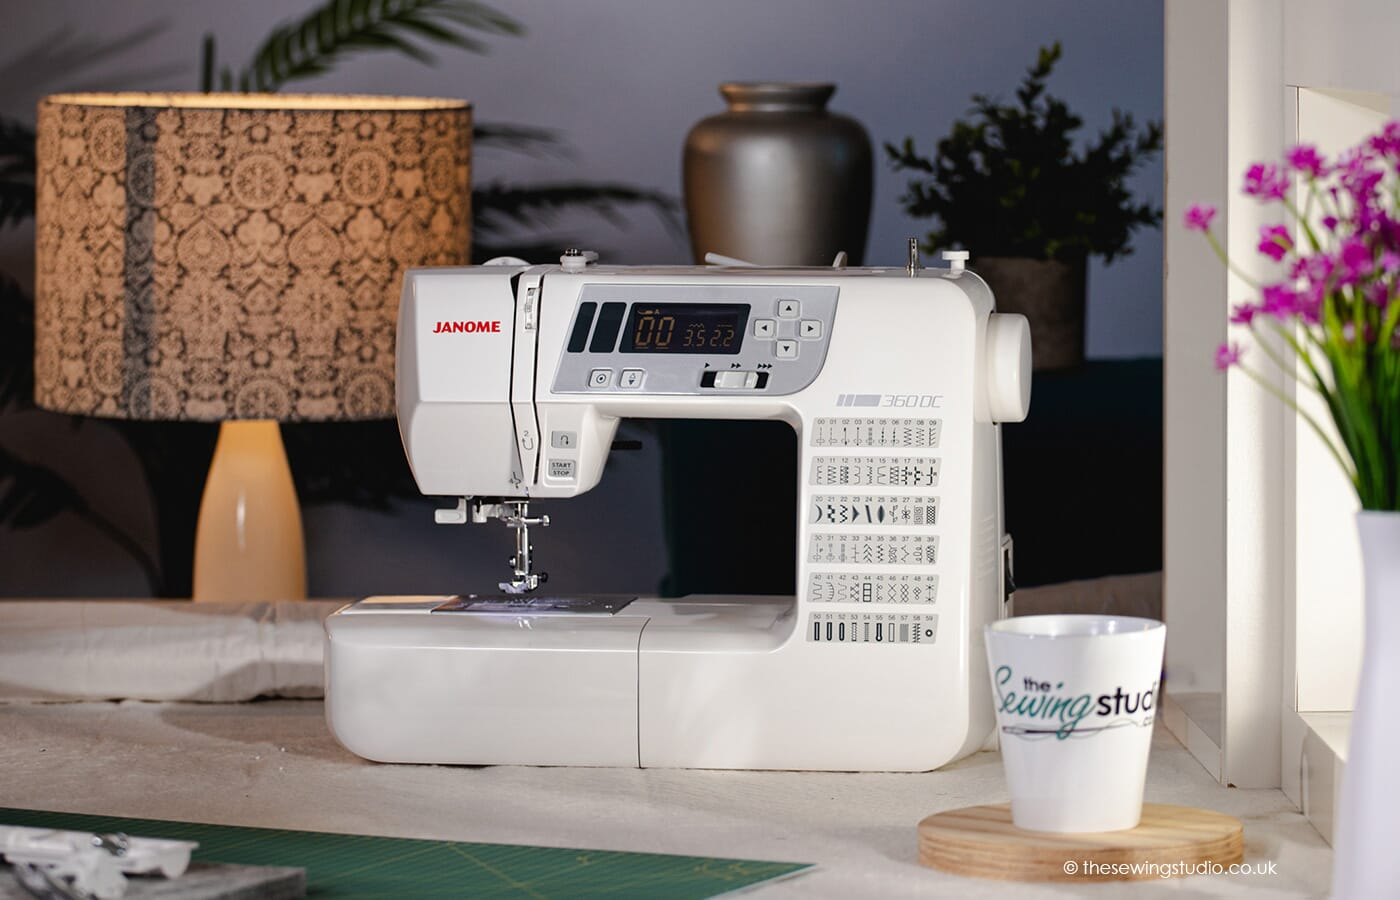 Janome 360DC Sewing Machine in a Sewing Room